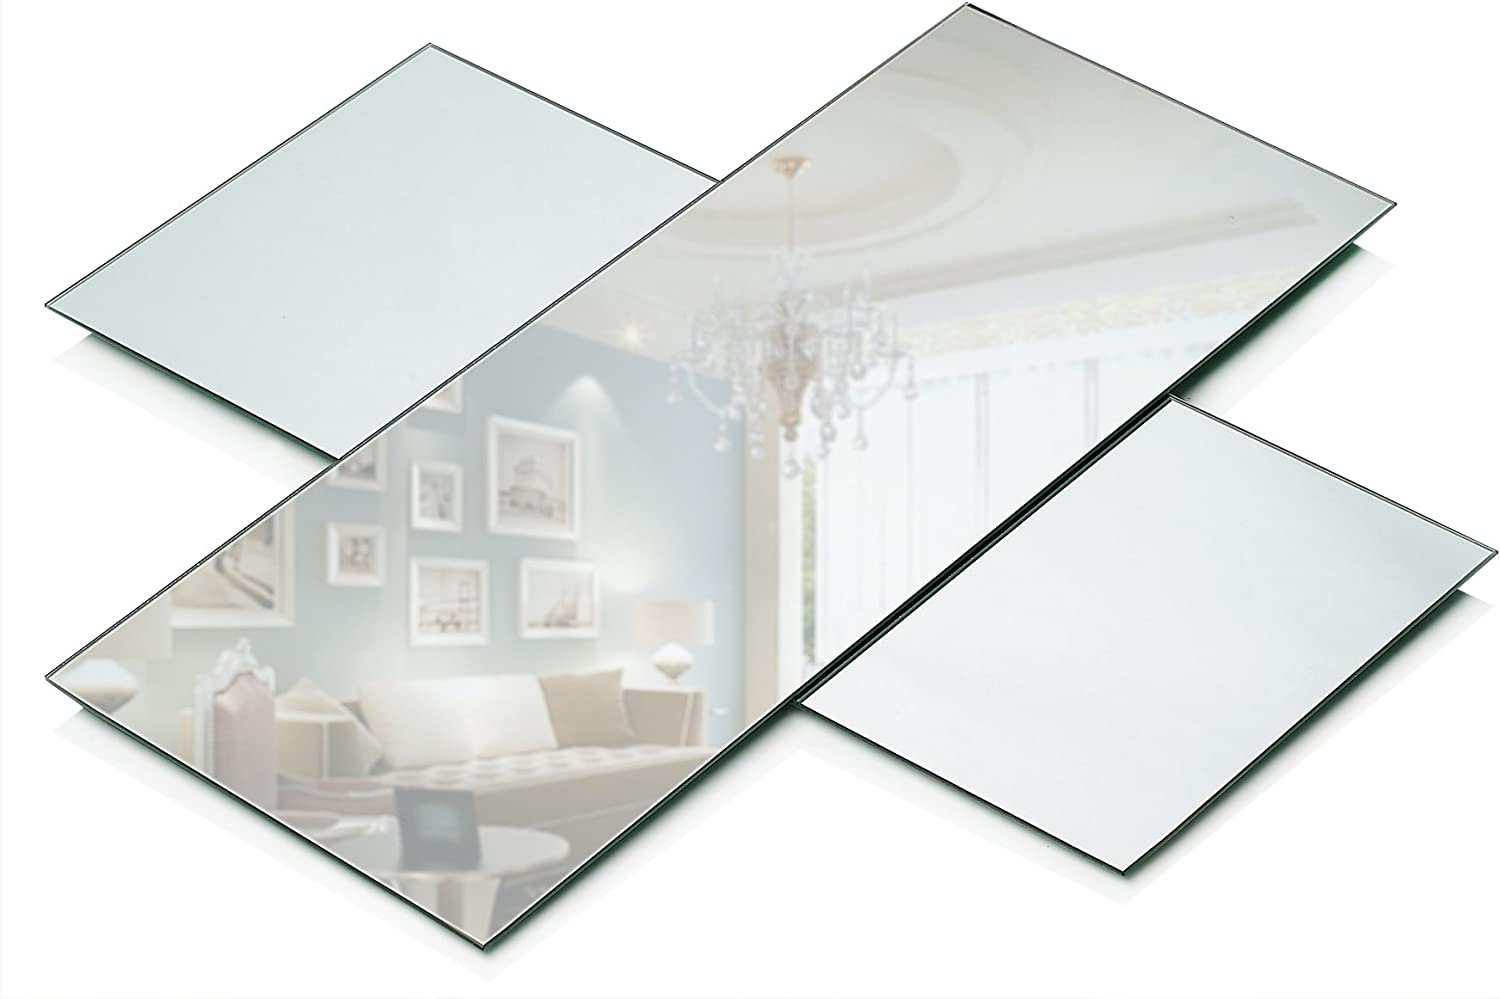 Rectangle Mirror Tray - Mirrors Glass Plates - 5 x 12 inch with 2 mm Round Edge - Great as Wedding and Party Table Centerpieces, Candle Plate Holder, Wall Decor. (Set of 3)